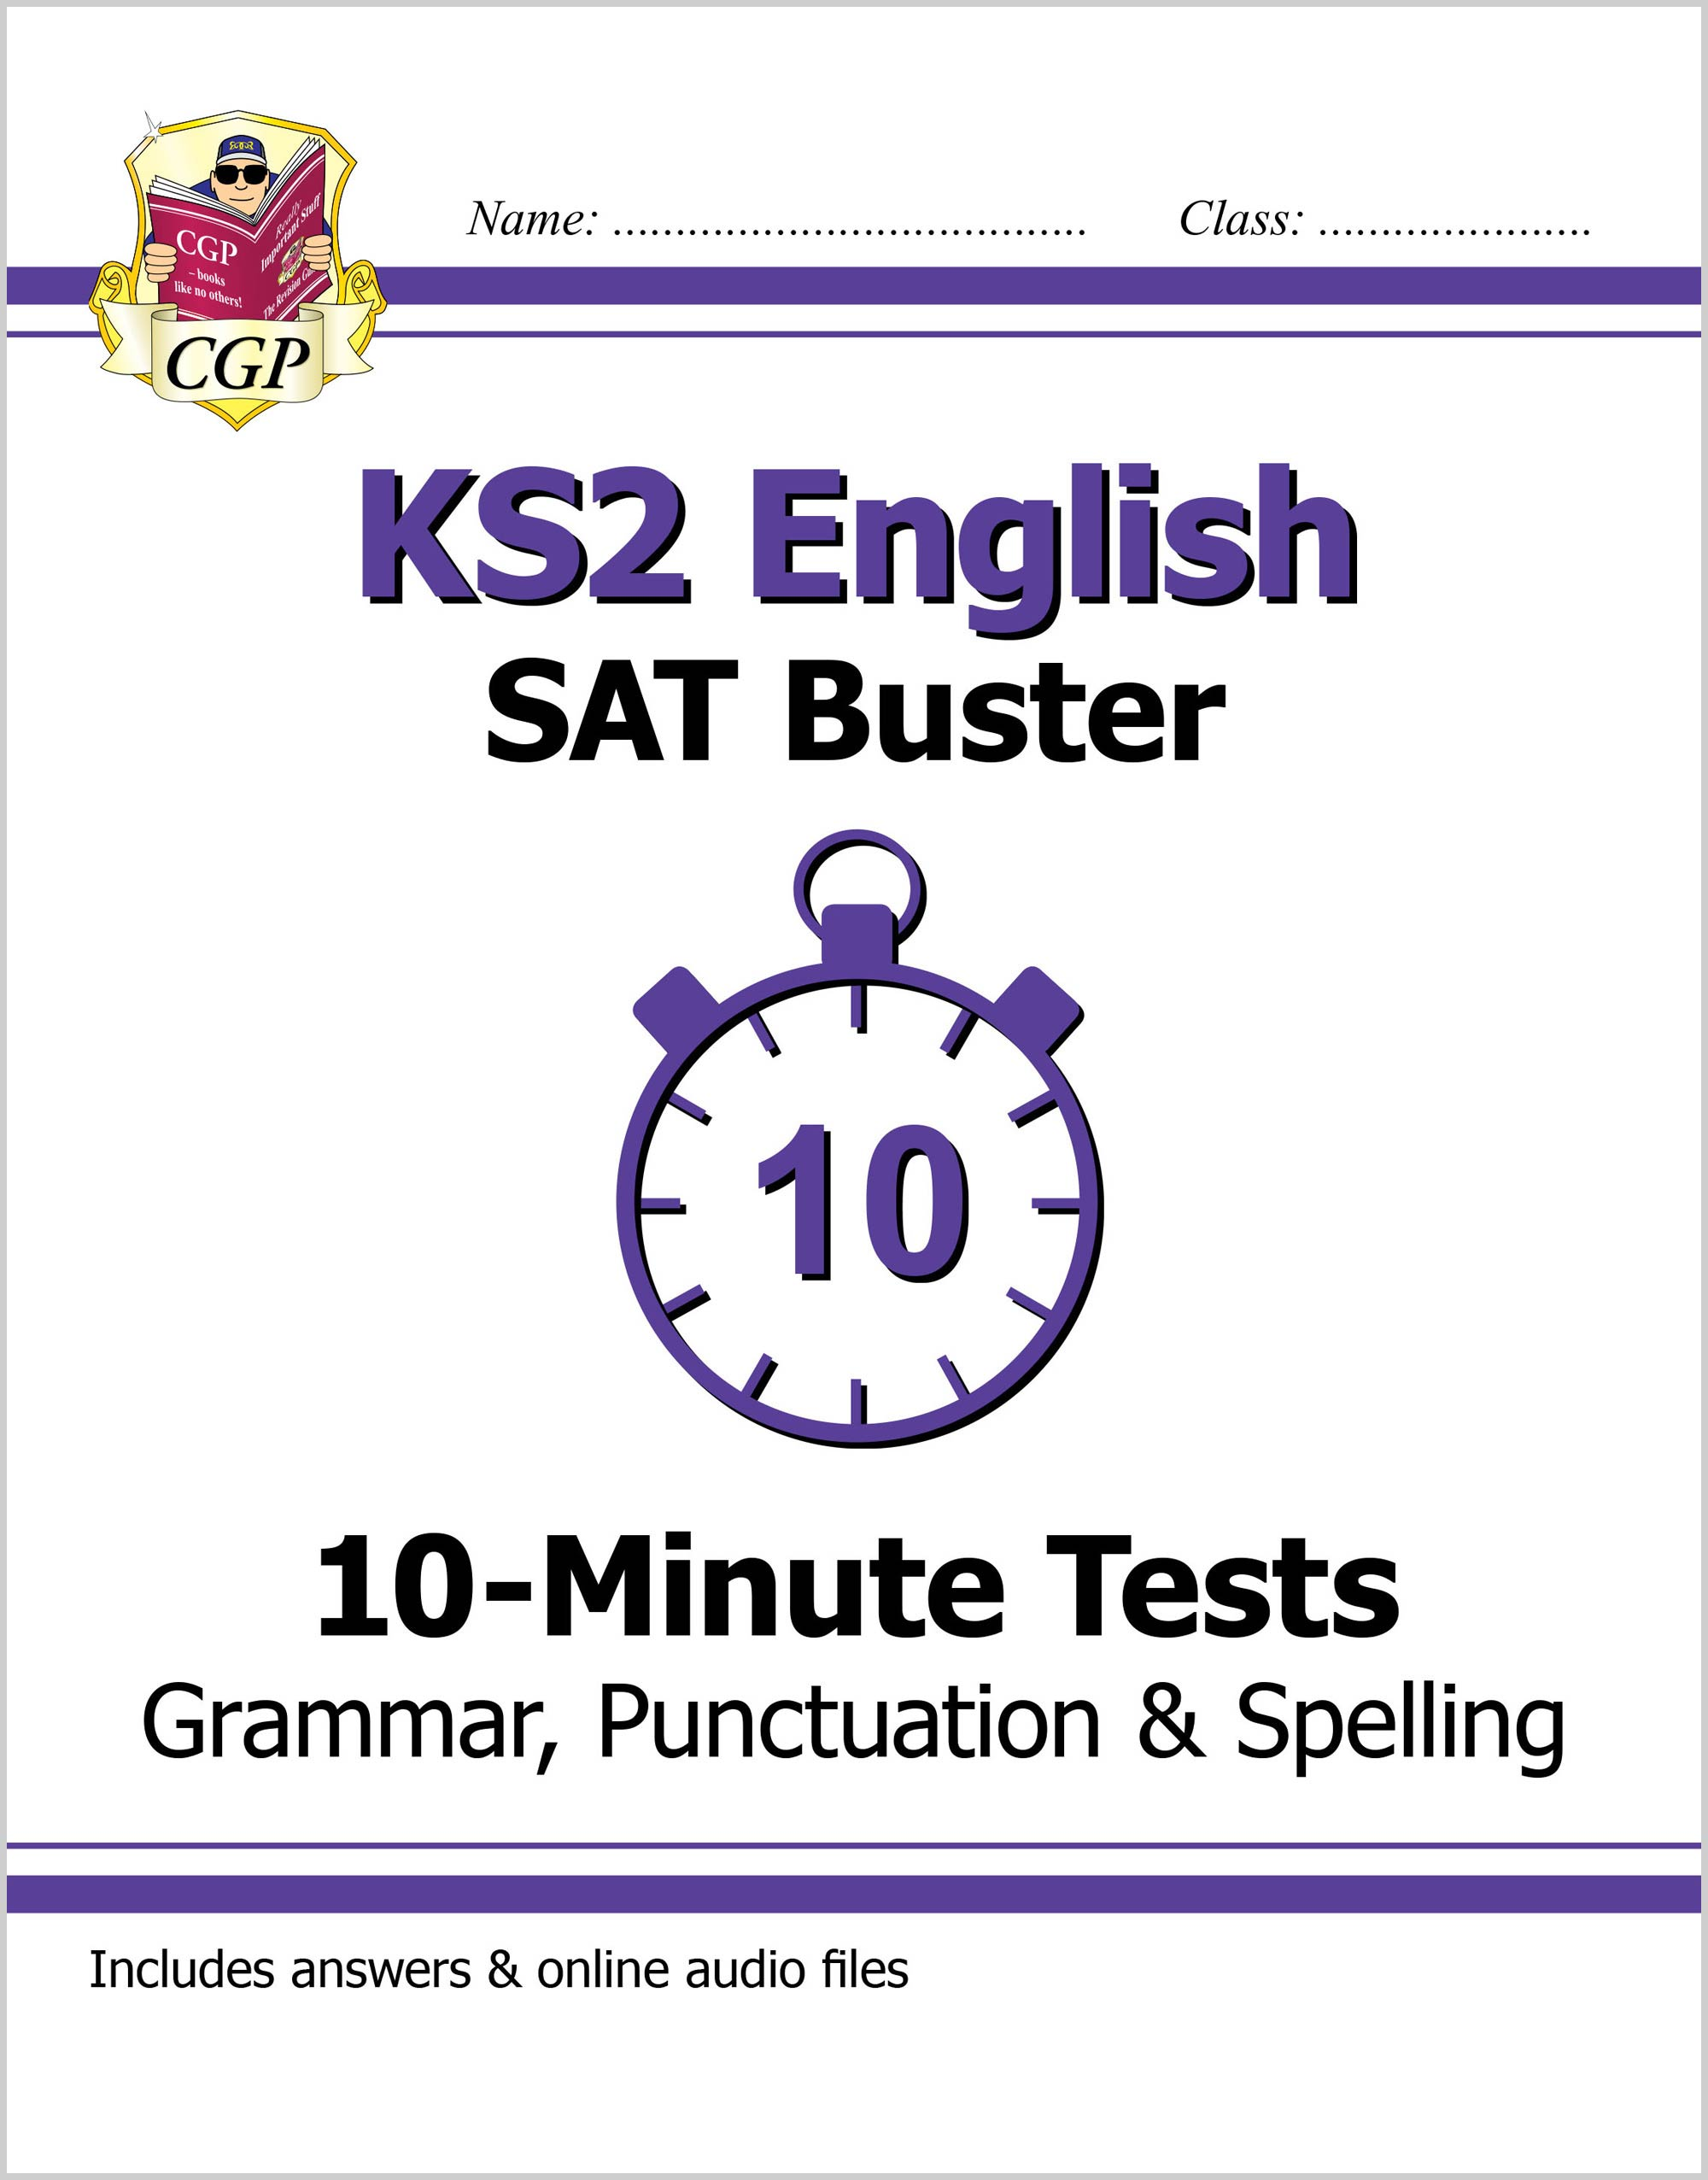 EXPG22DK - KS2 English SAT Buster 10-Minute Tests: Grammar, Punctuation & Spelling Book 1 (for the 2